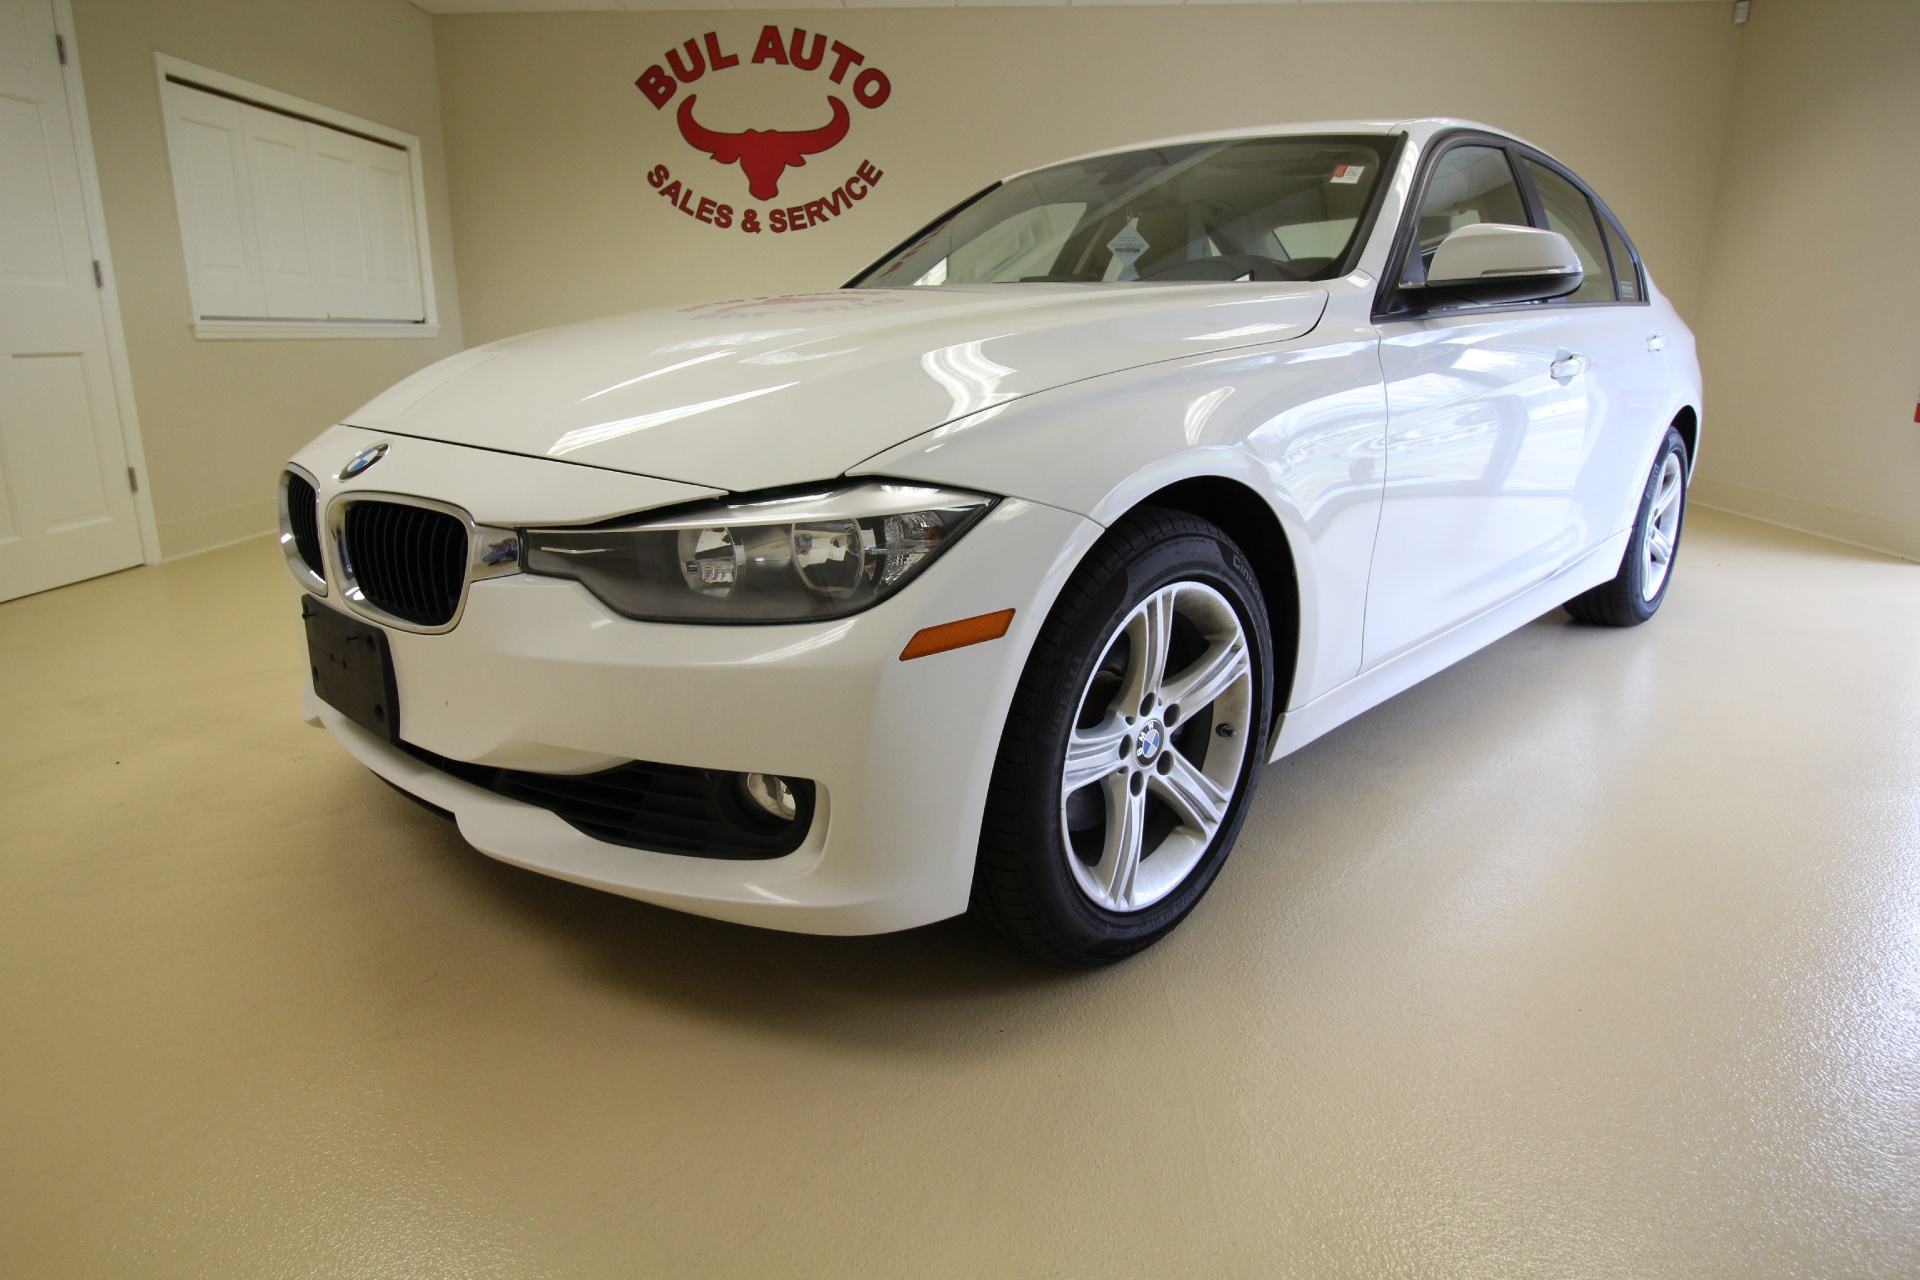 2013 bmw 3 series 328i xdrive super clean navigation heated seats stock 16066 for sale near. Black Bedroom Furniture Sets. Home Design Ideas